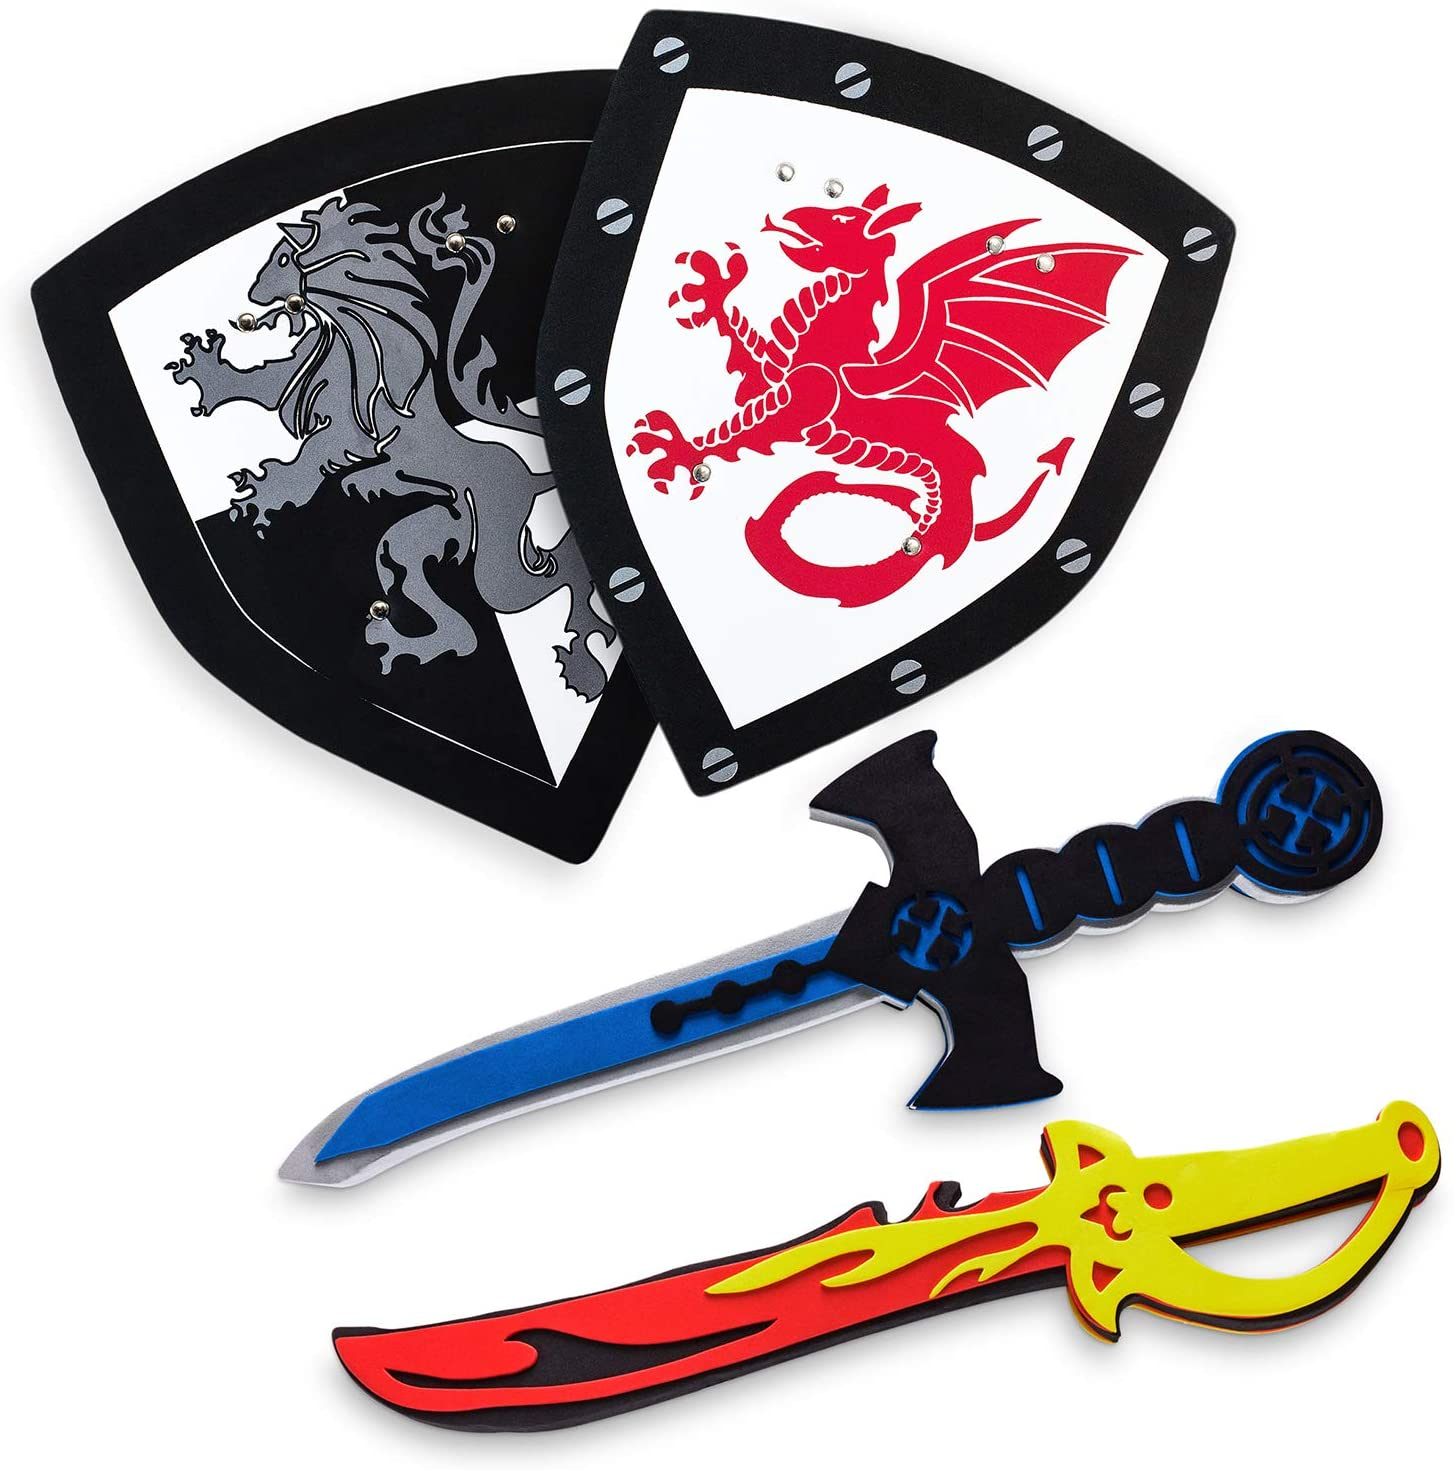 KNIGHTS WARRIORS SWORD AND SHIELD SUPPLY ONLY ONE